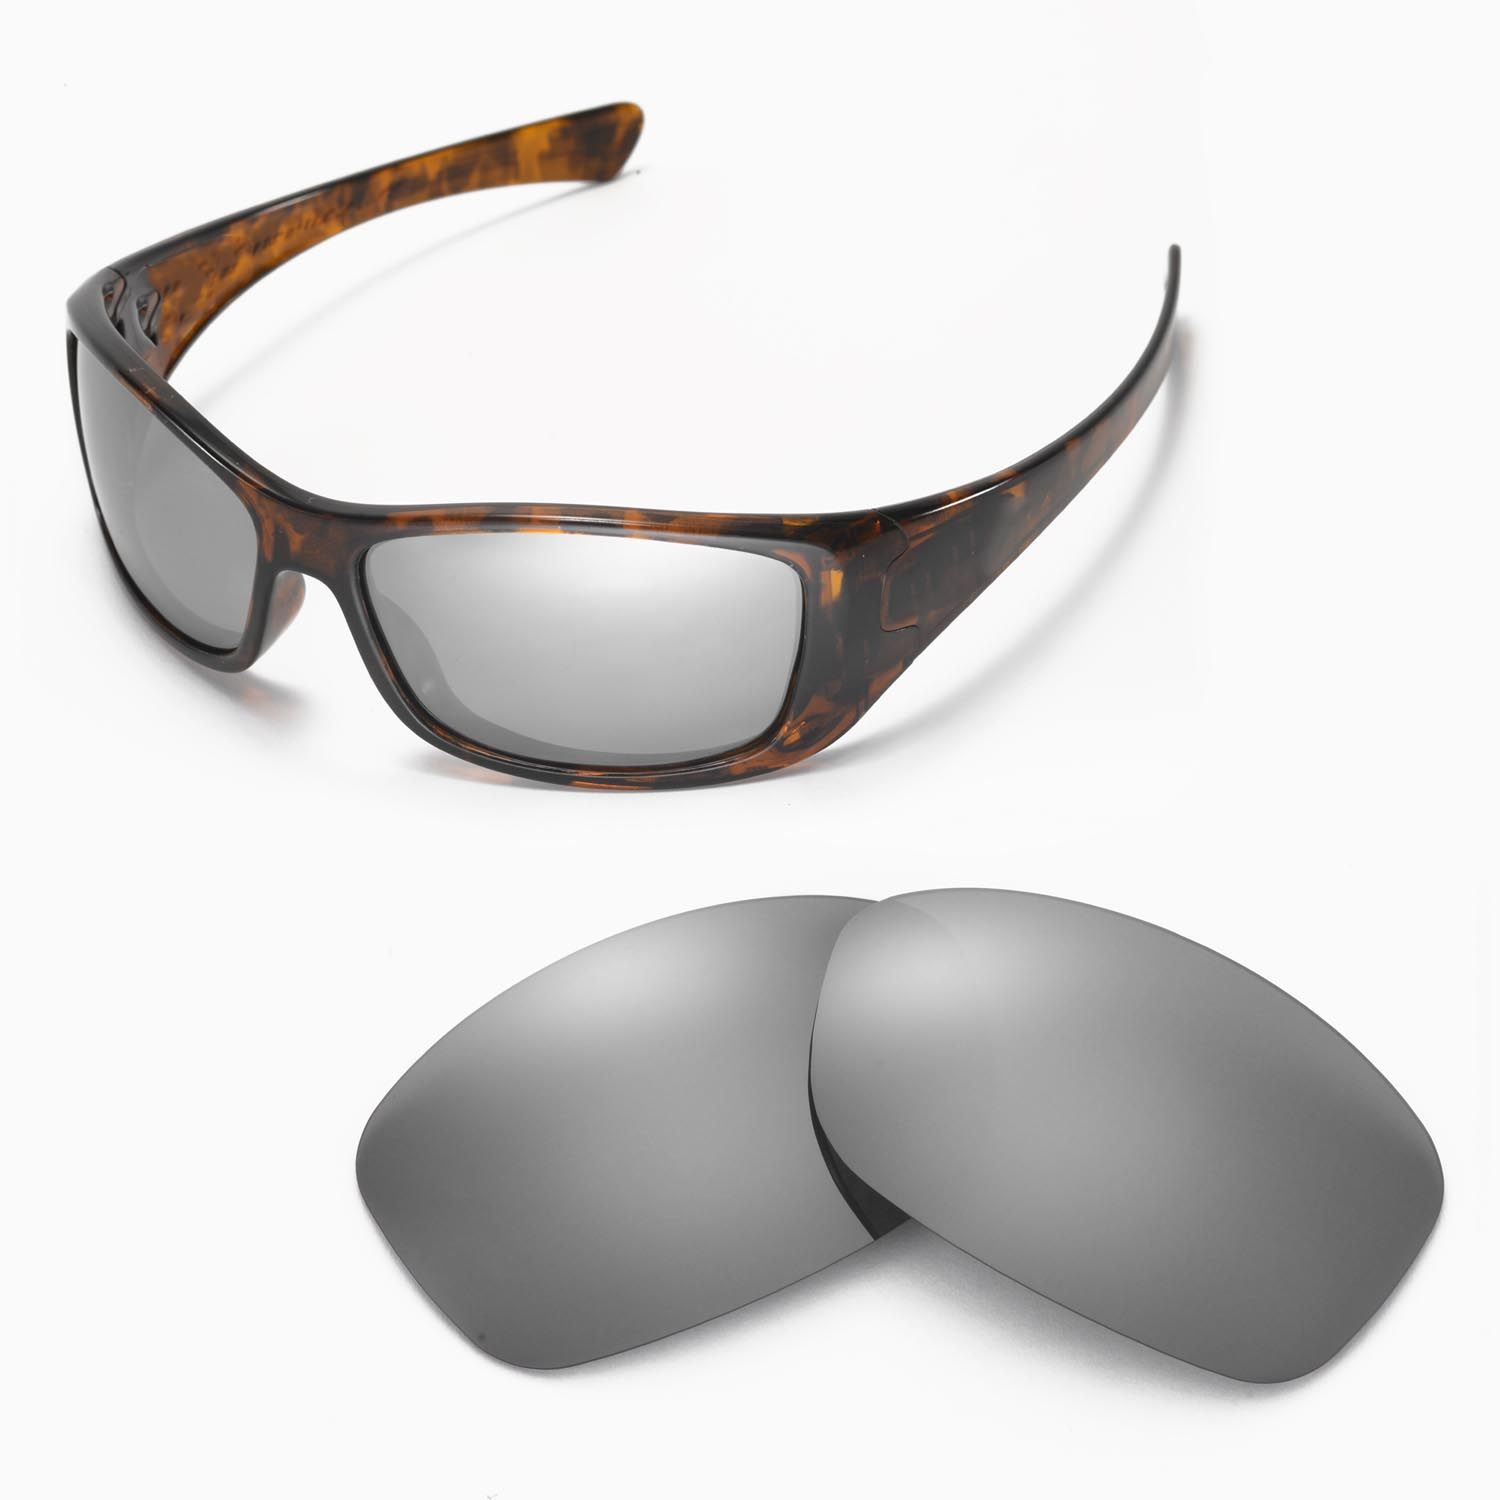 2798799cbb3 Details about New Walleva Polarized Titanium Replacement Lenses For Oakley  Hijinx Sunglasses